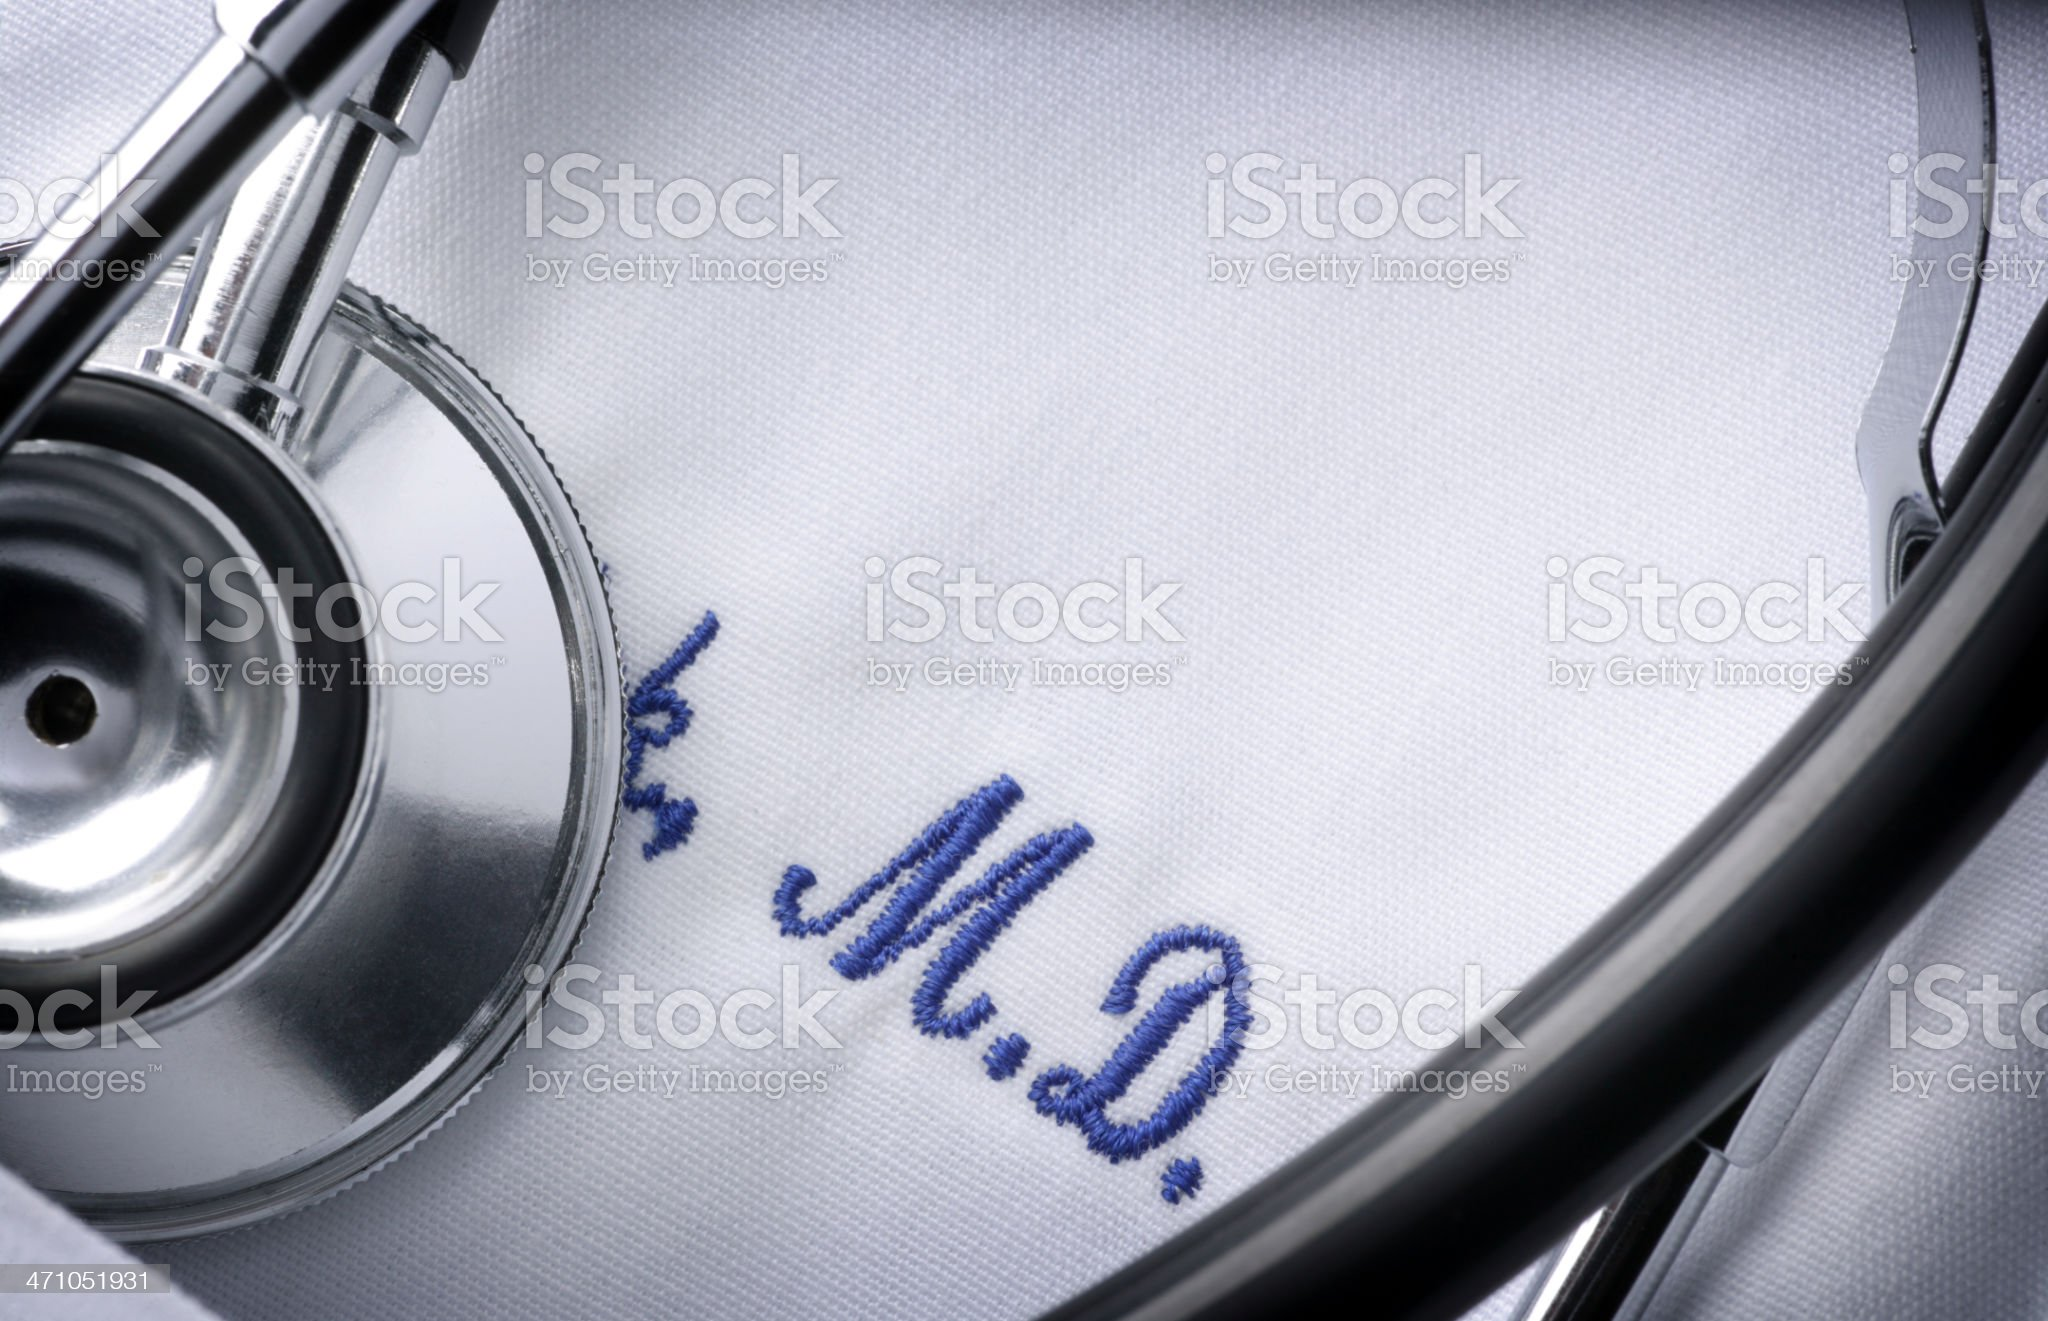 Close up of a stethoscope and embroidery on a doctor's jacket royalty-free stock photo